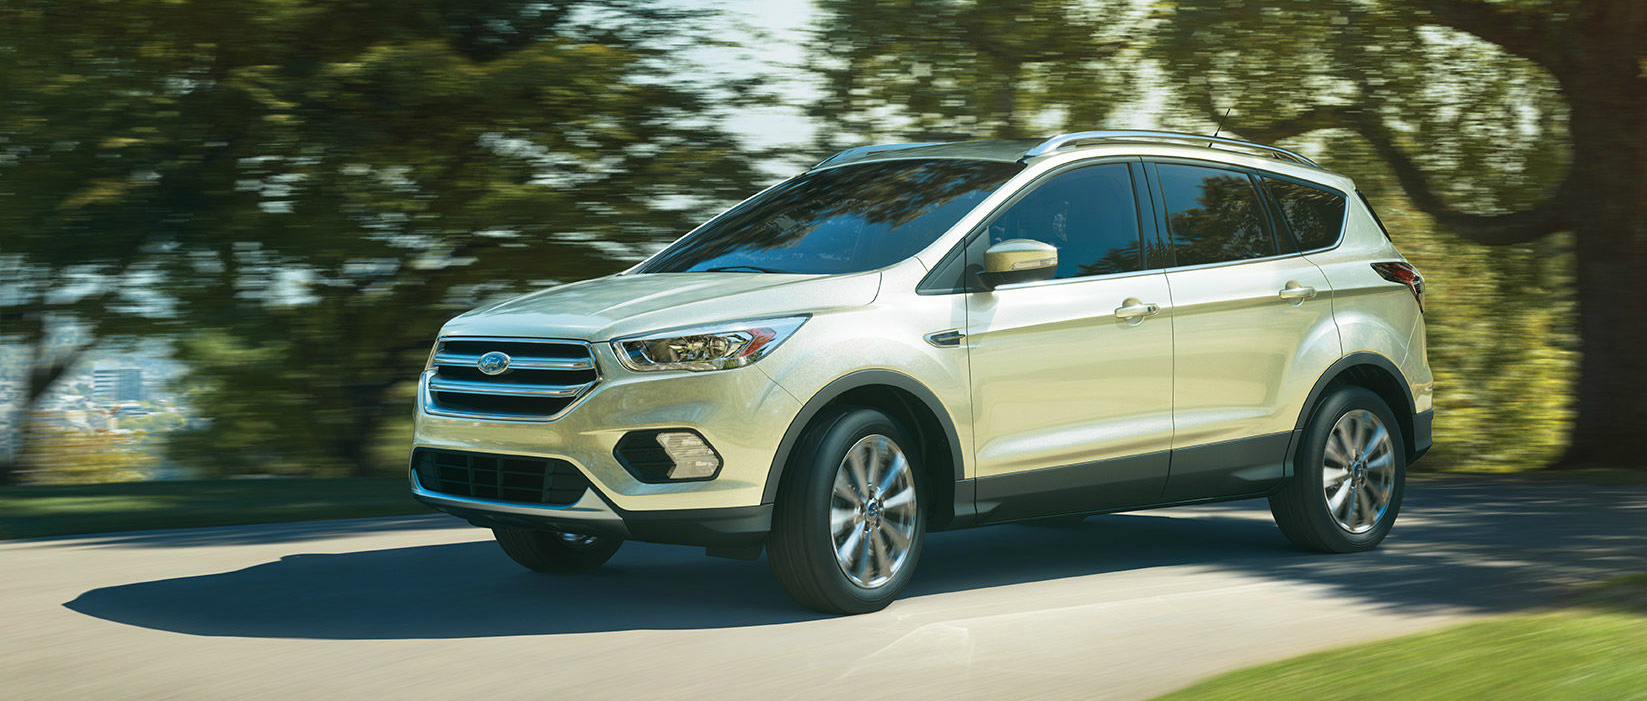 Valley Chevy - Top-Rated SUVs to Buy: Ford Escape - Green Exterior